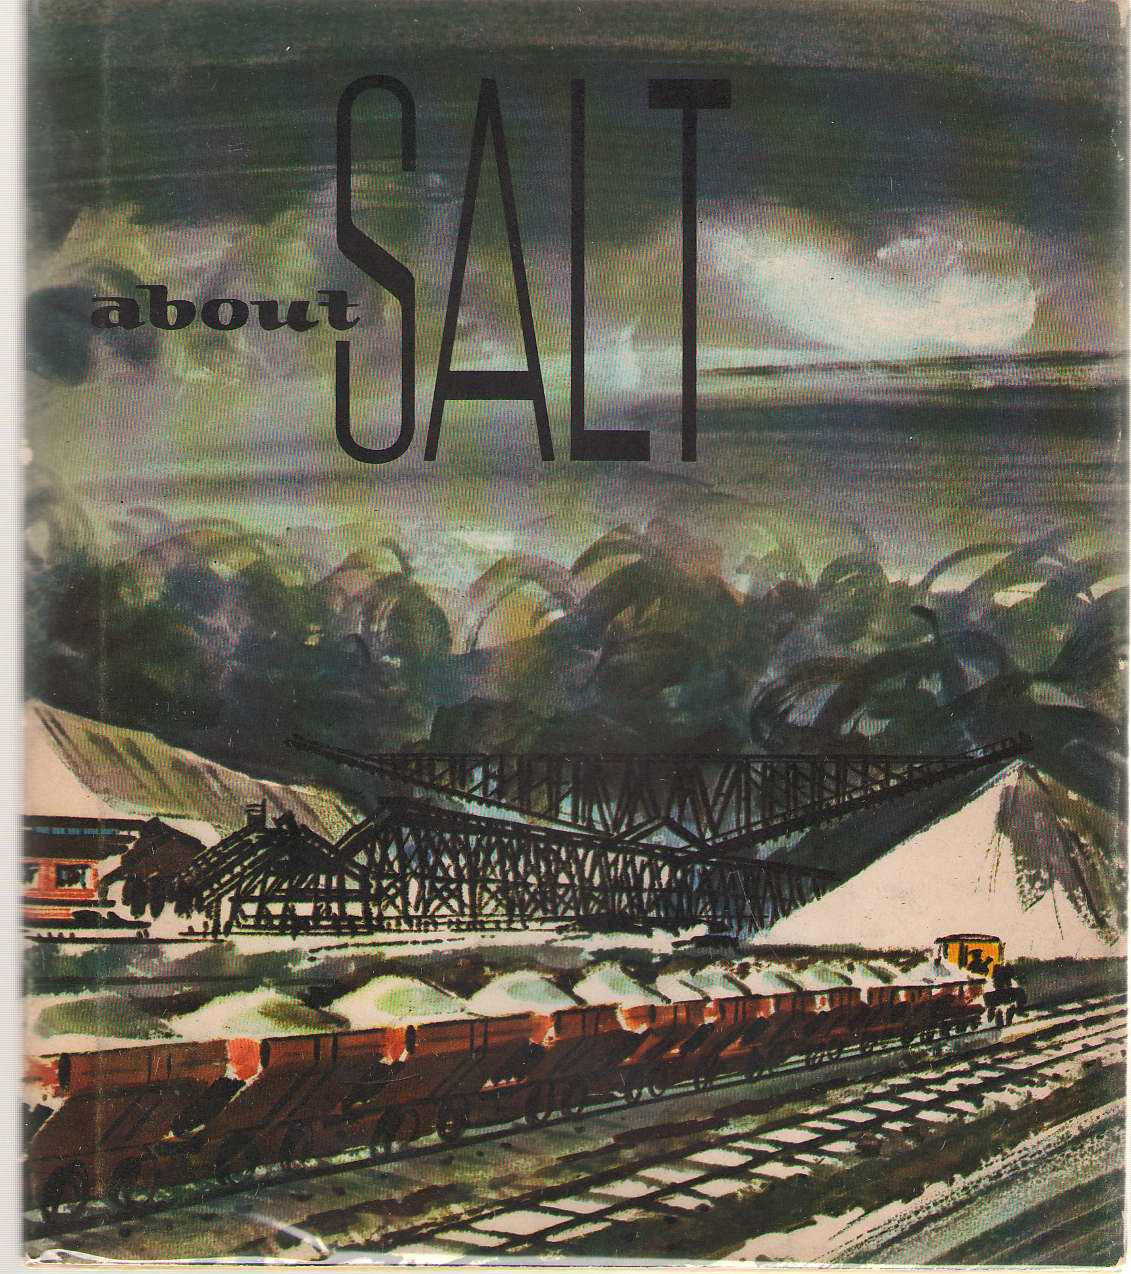 About Salt, Telfer, Dorothy & Felix Palm (Illustrator)